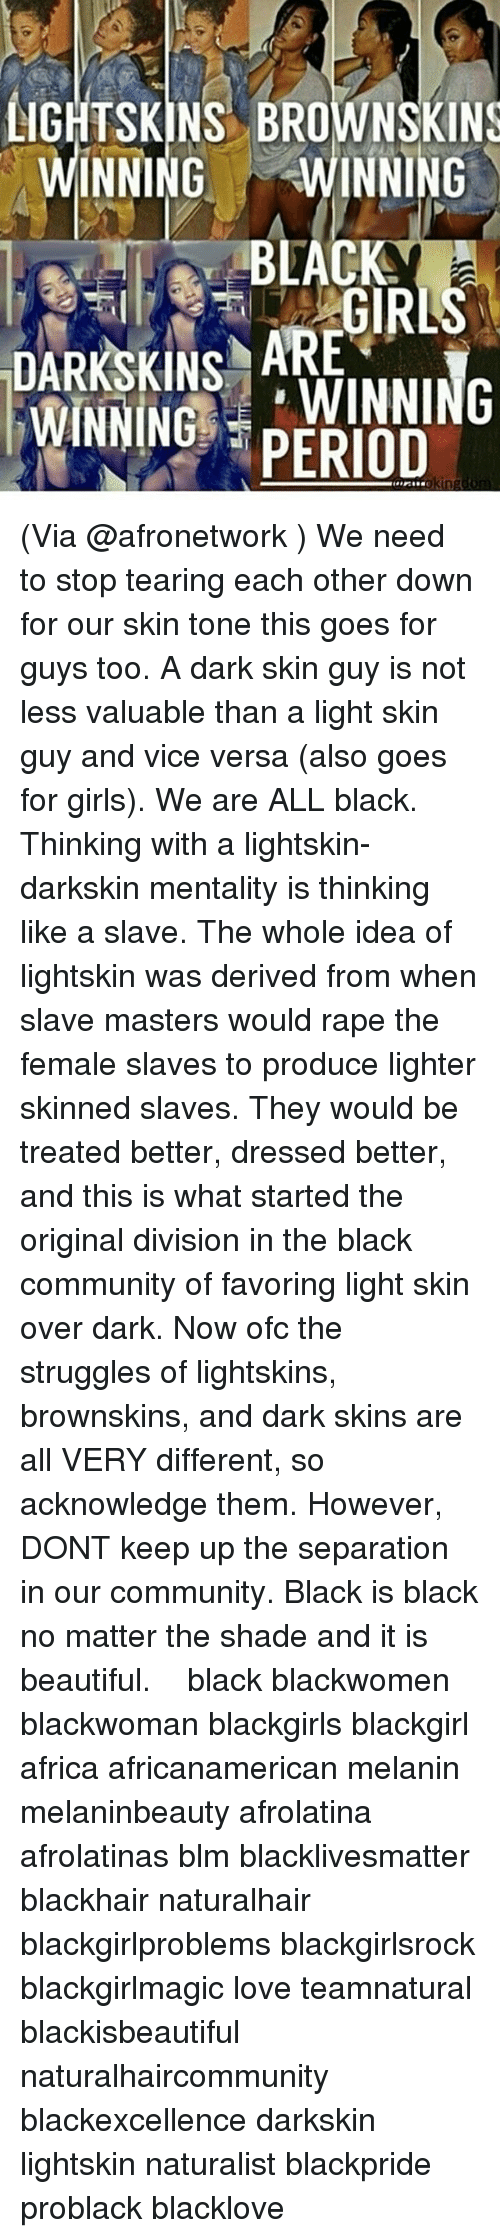 Darkskins: LIGHTSKINS BROWNSKINS  WINNING WINNING  BLACK  ARE  DARKSKINS AWINNING  WINNING PERIOD (Via @afronetwork ) We need to stop tearing each other down for our skin tone this goes for guys too. A dark skin guy is not less valuable than a light skin guy and vice versa (also goes for girls). We are ALL black. Thinking with a lightskin- darkskin mentality is thinking like a slave. The whole idea of lightskin was derived from when slave masters would rape the female slaves to produce lighter skinned slaves. They would be treated better, dressed better, and this is what started the original division in the black community of favoring light skin over dark. Now ofc the struggles of lightskins, brownskins, and dark skins are all VERY different, so acknowledge them. However, DONT keep up the separation in our community. Black is black no matter the shade and it is beautiful. ー ー ー black blackwomen blackwoman blackgirls blackgirl africa africanamerican melanin melaninbeauty afrolatina afrolatinas blm blacklivesmatter blackhair naturalhair blackgirlproblems blackgirlsrock blackgirlmagic love teamnatural blackisbeautiful naturalhaircommunity blackexcellence darkskin lightskin naturalist blackpride problack blacklove